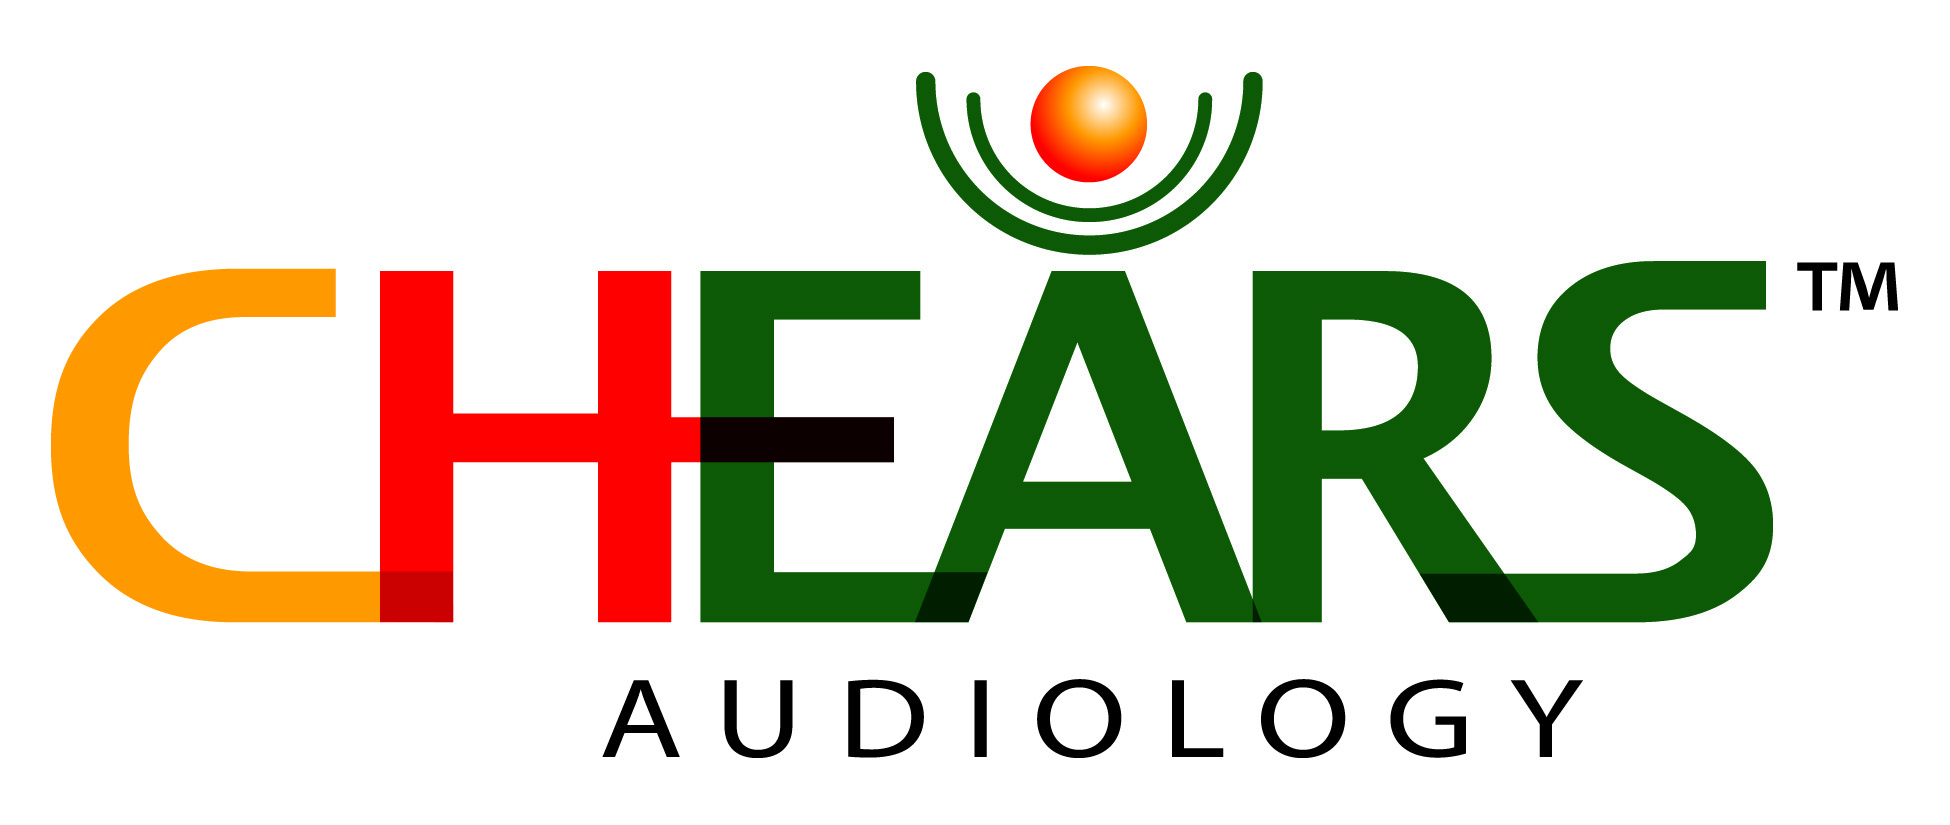 Lo chears audiology 4clr cmyk